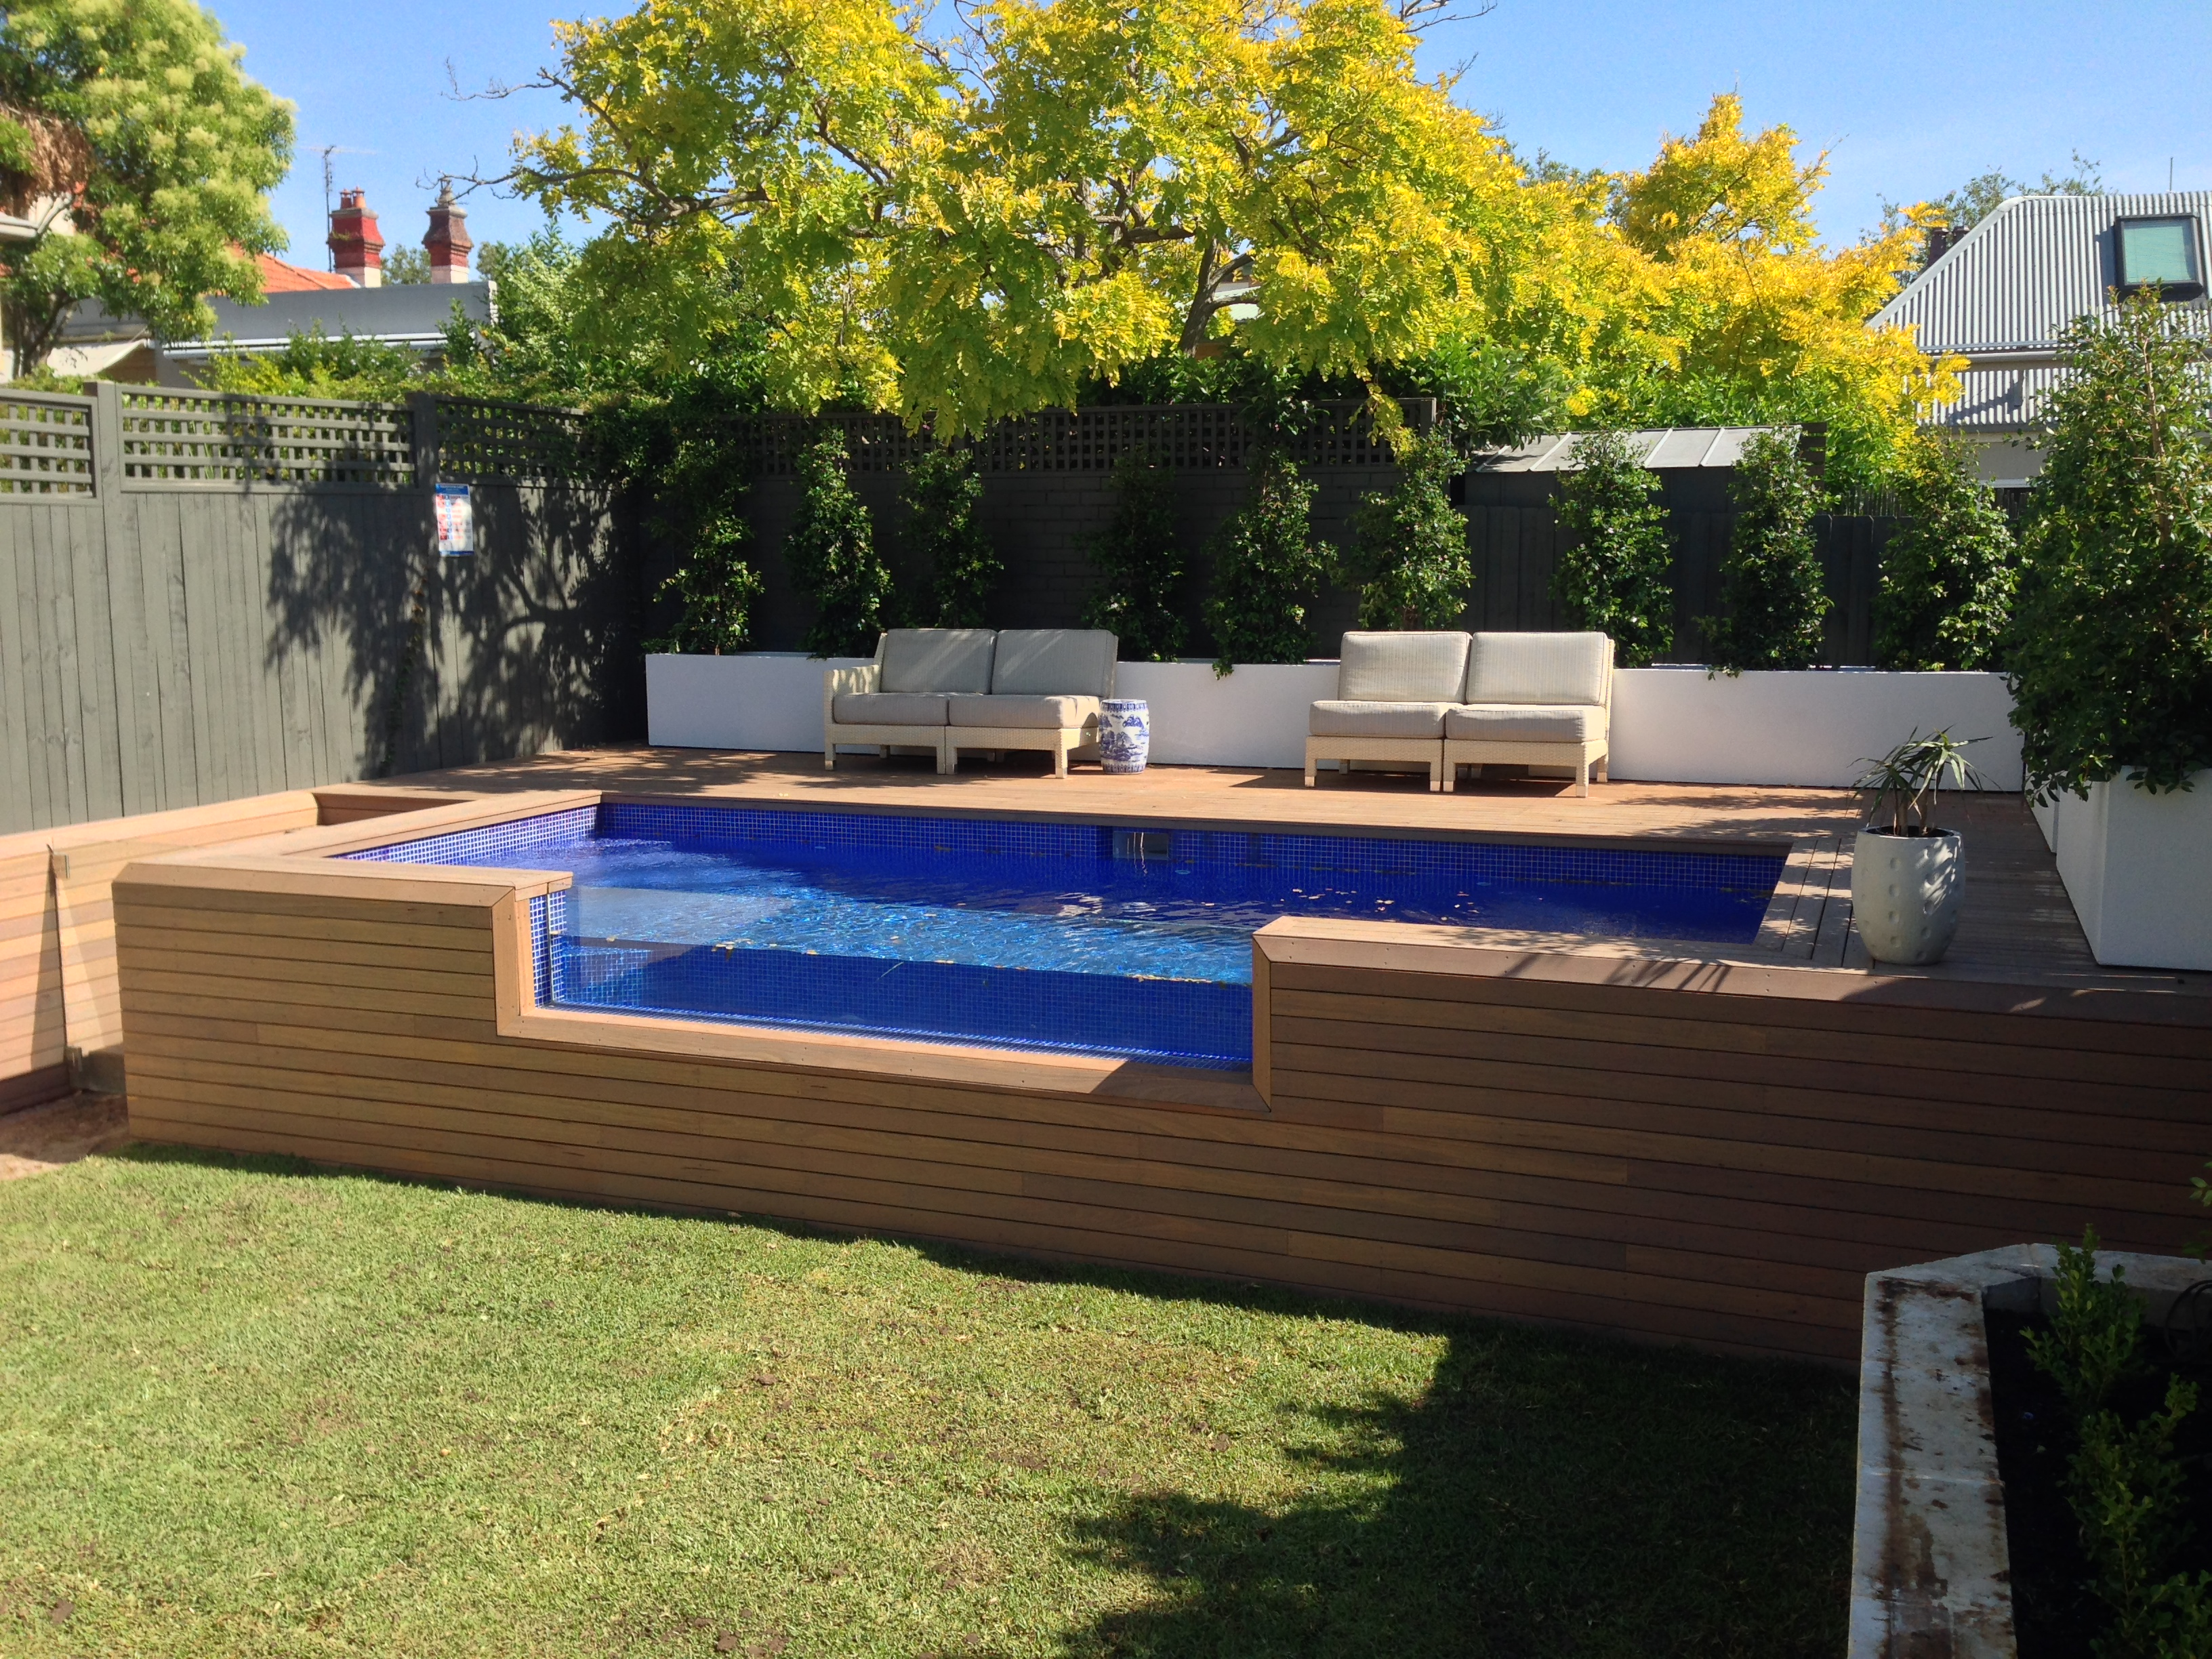 domain pools sydney pool builder sydney north sydney. Black Bedroom Furniture Sets. Home Design Ideas